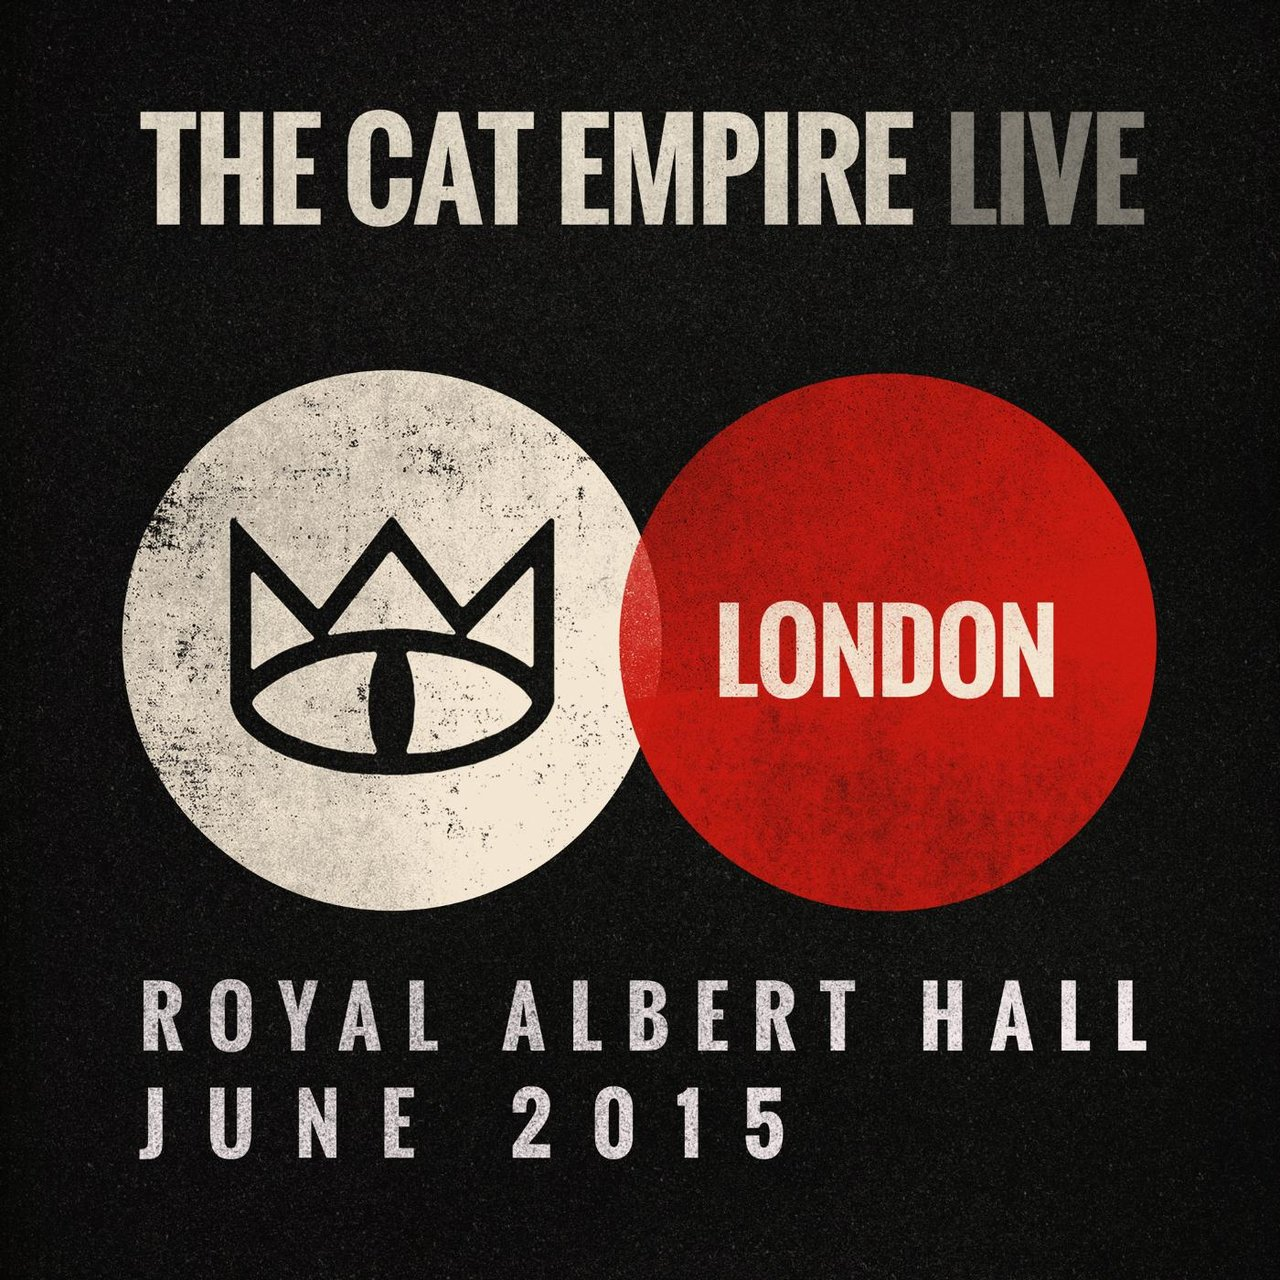 Live at the Royal Albert Hall - The Cat Empire